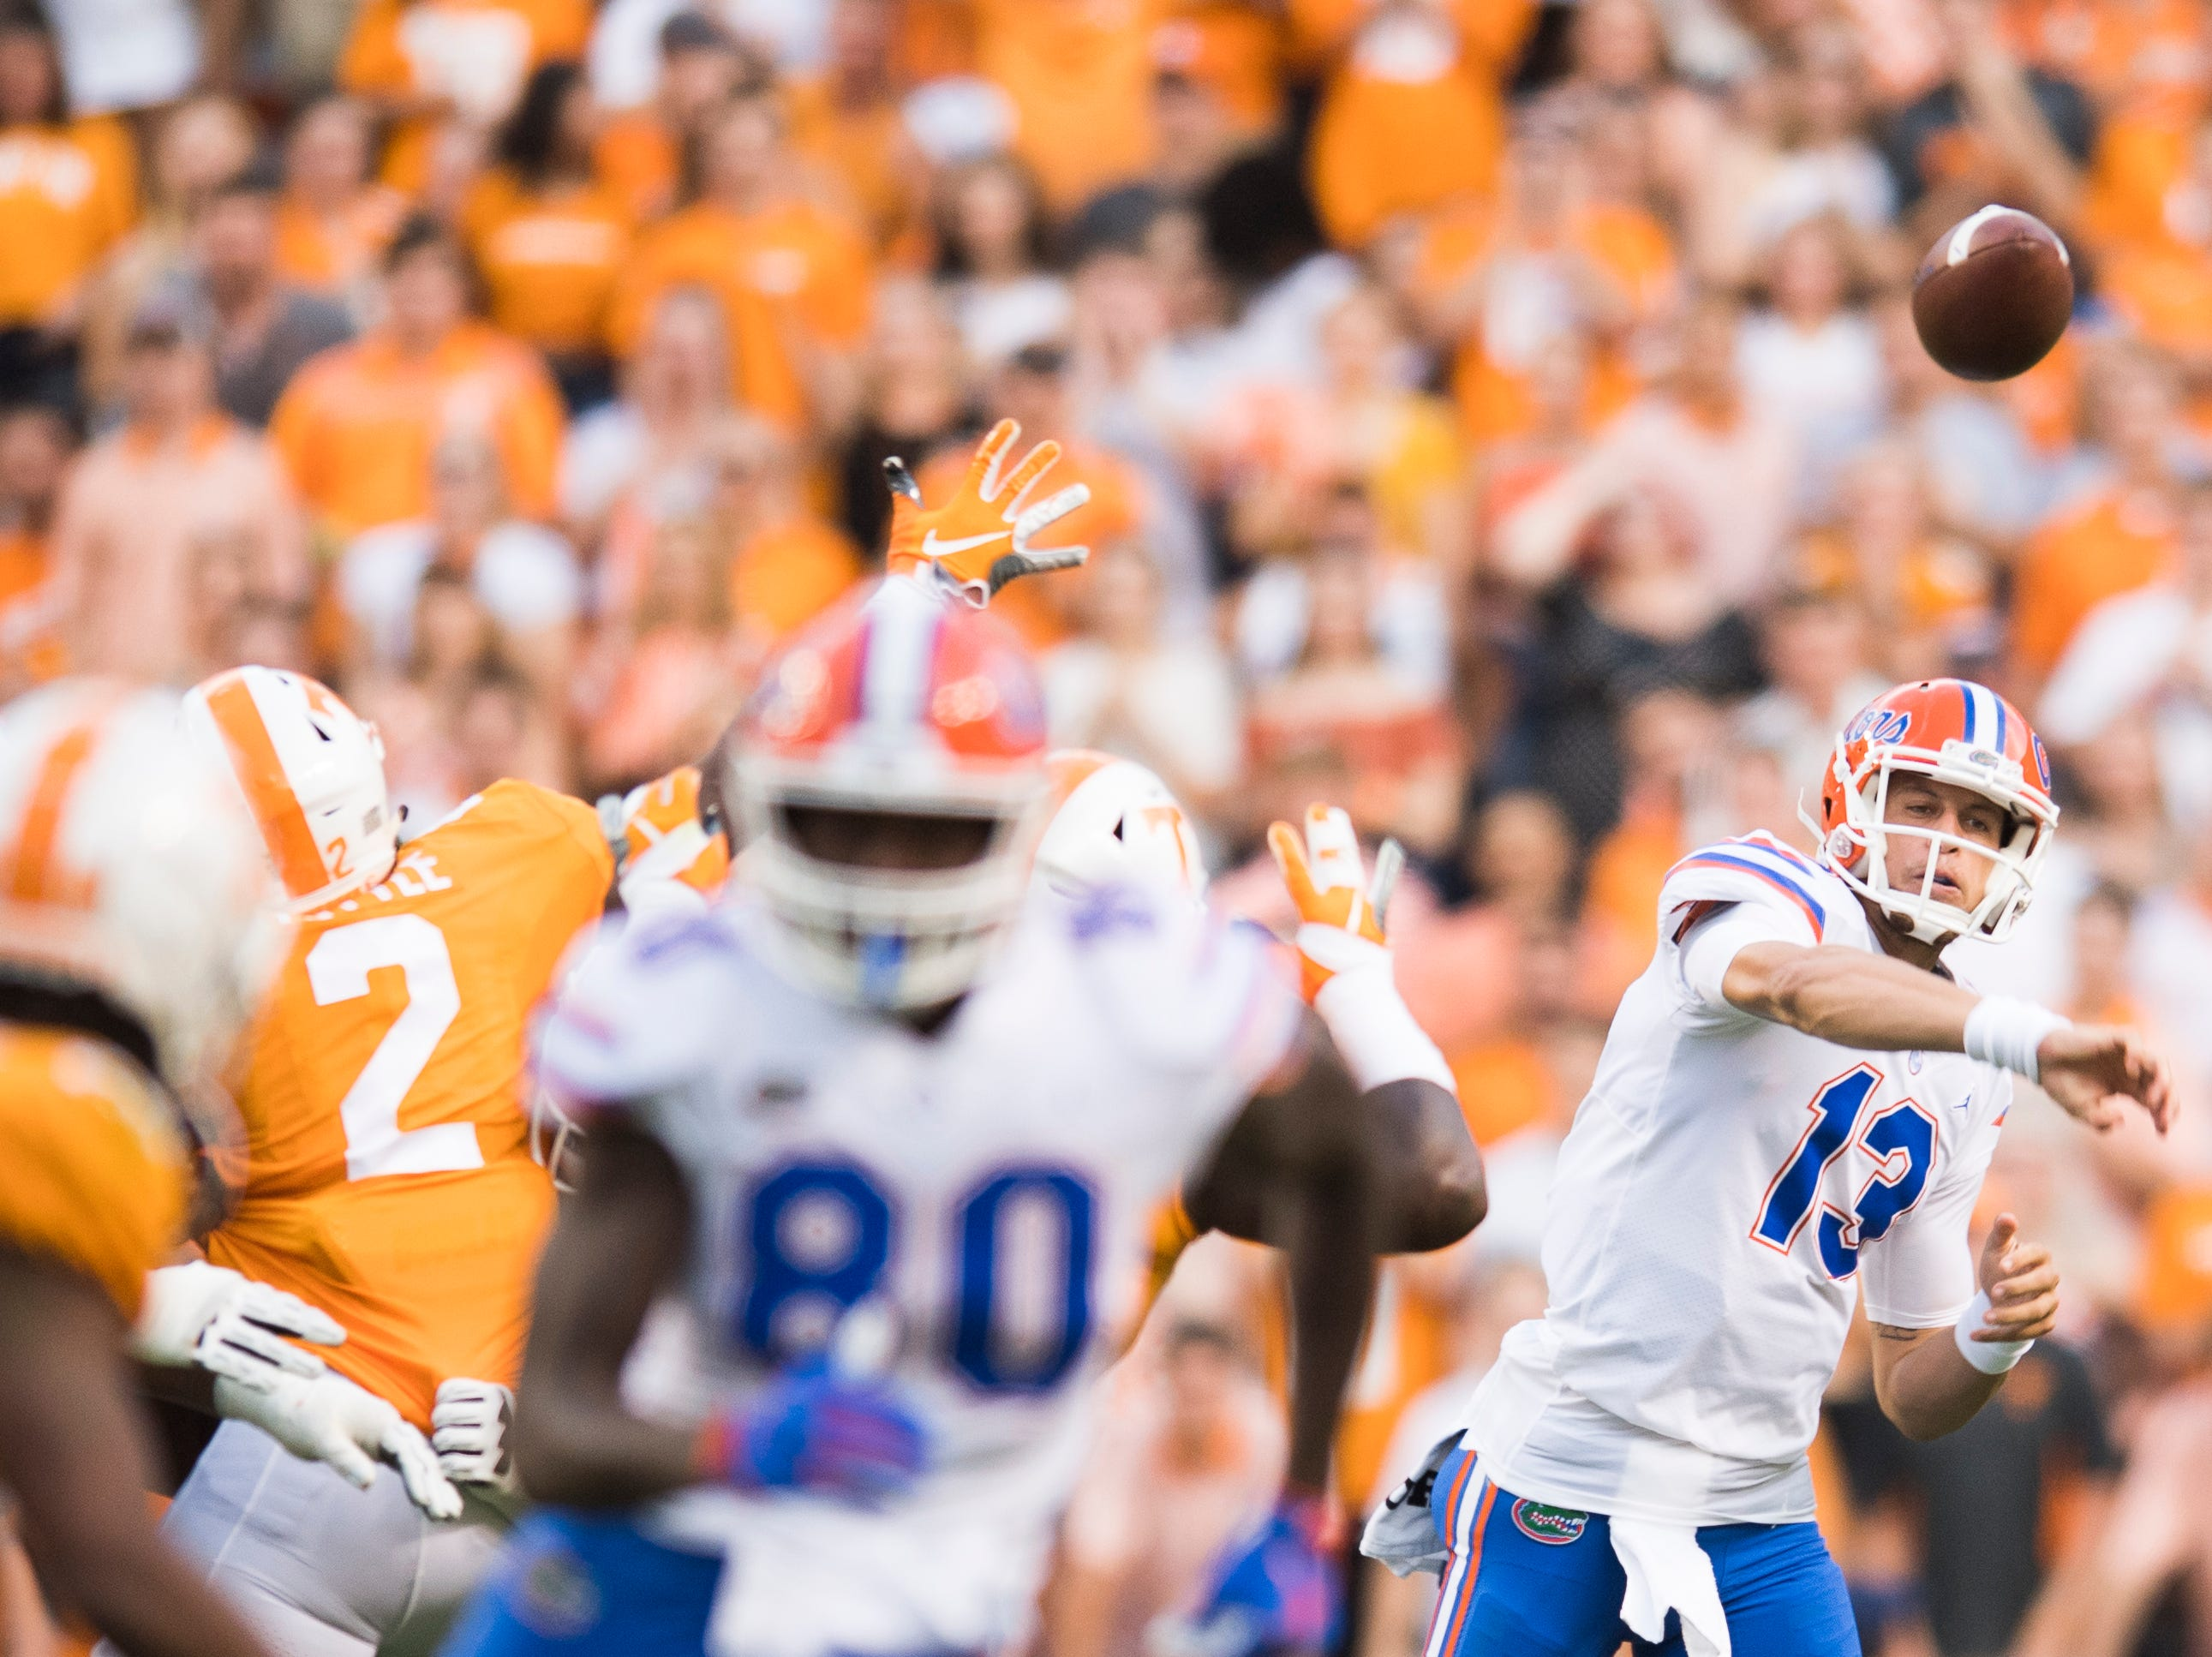 Florida quarterback Feleipe Franks (13) throws a pass during a game between Tennessee and Florida at Neyland Stadium in Knoxville, Tennessee on Saturday, September 22, 2018.